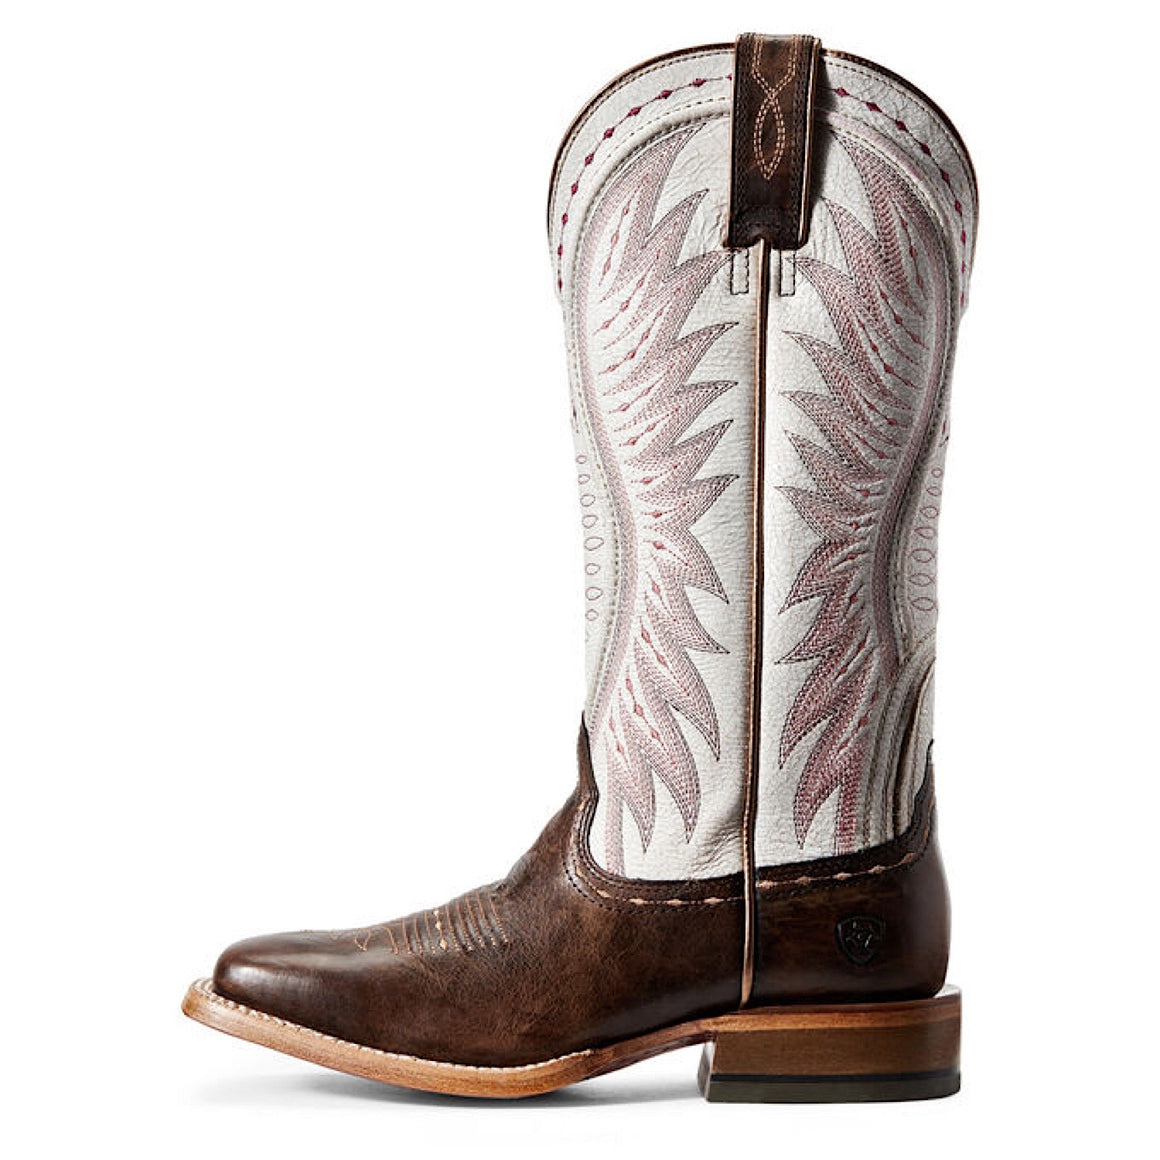 Ariat Women's Vaquera Western Boot Mustang Brown/Crackled White